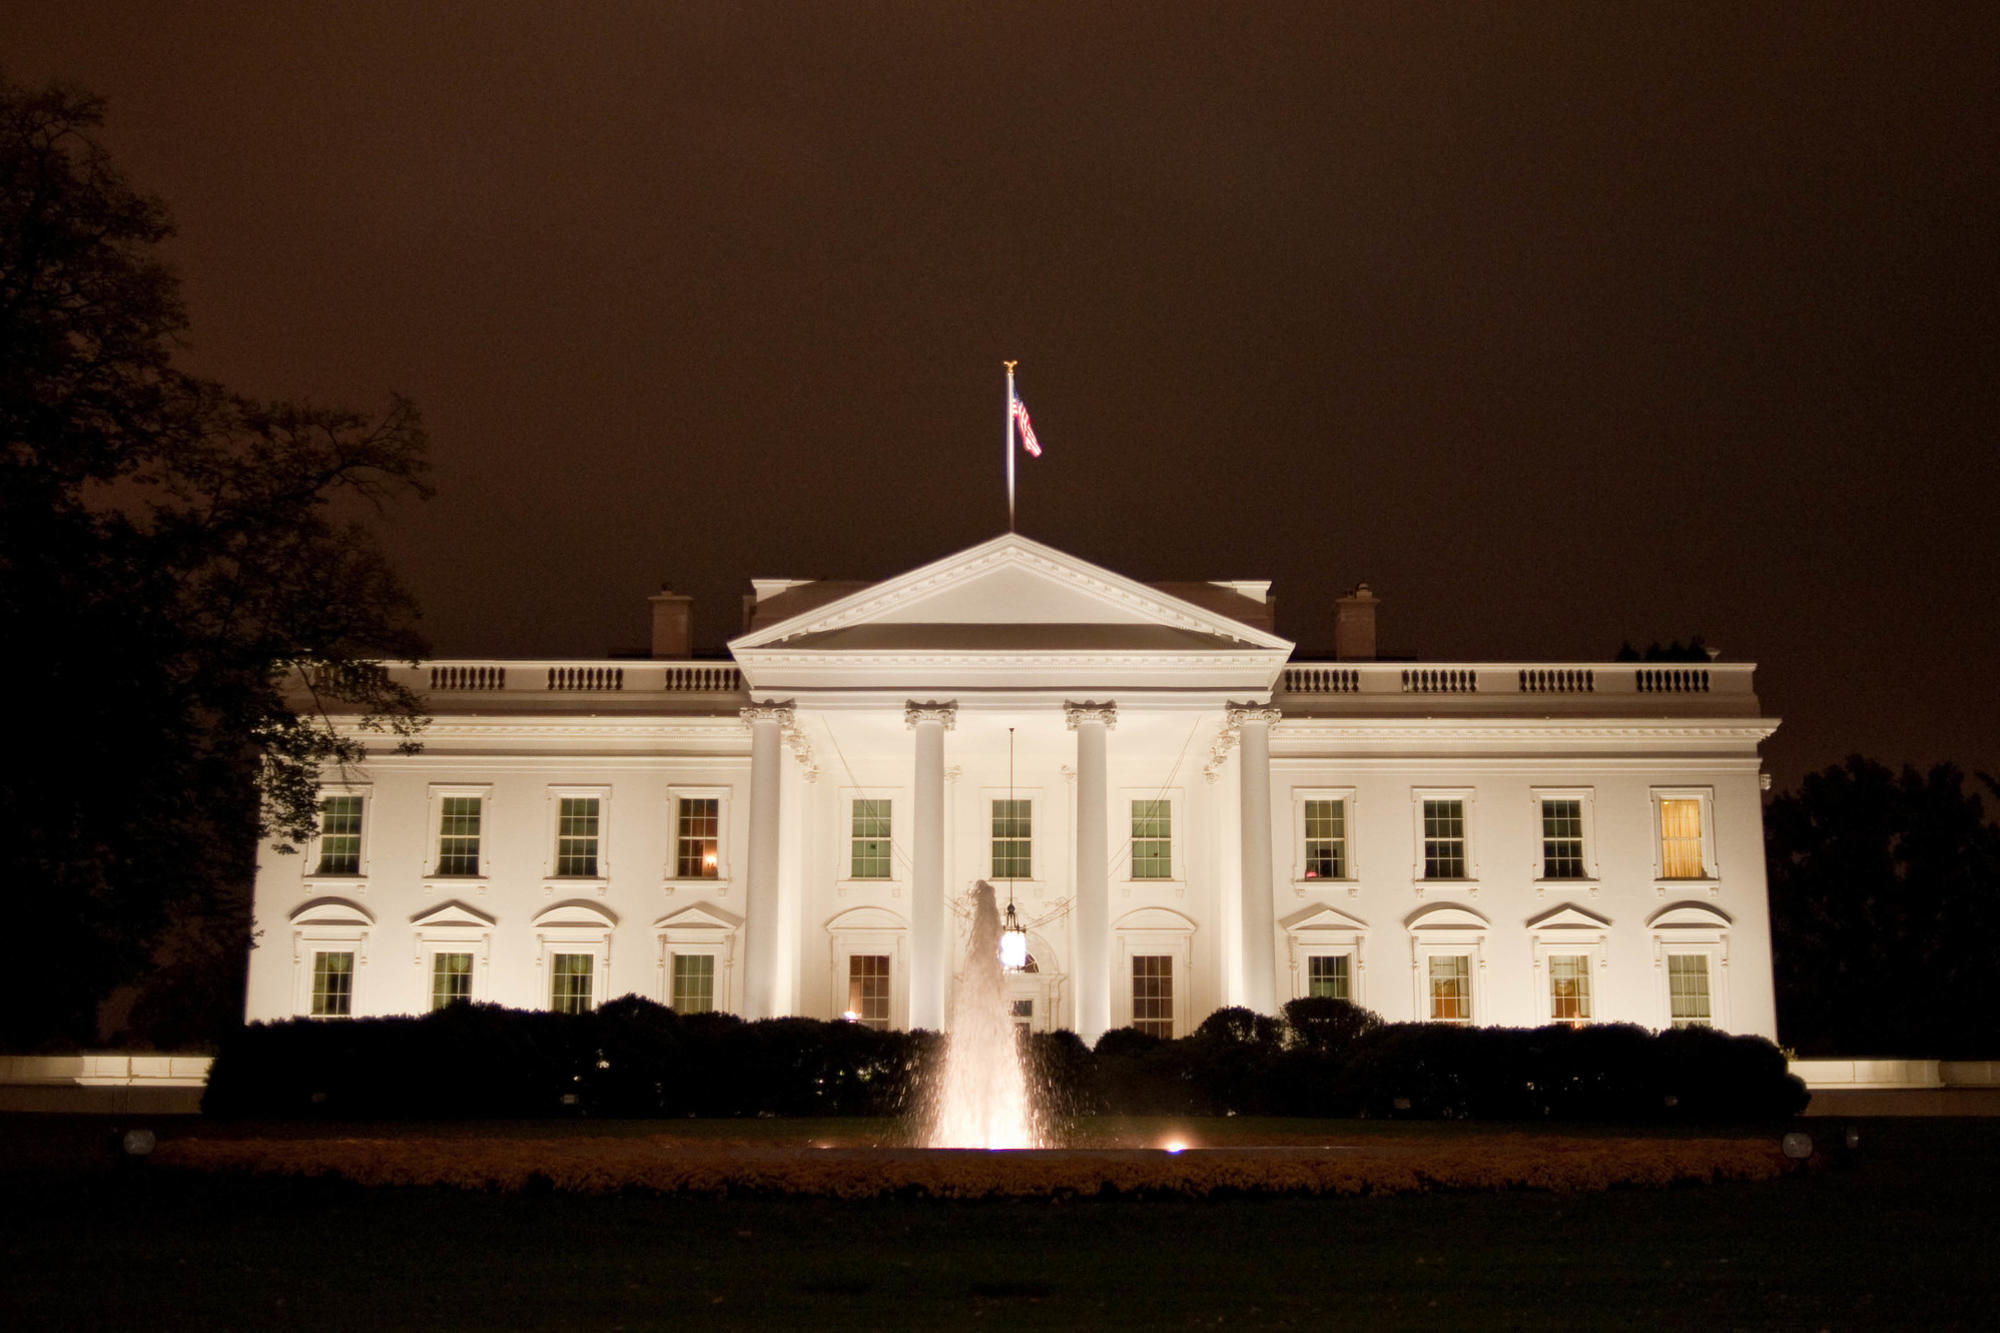 The White House lit up at night in Washington, D.C.